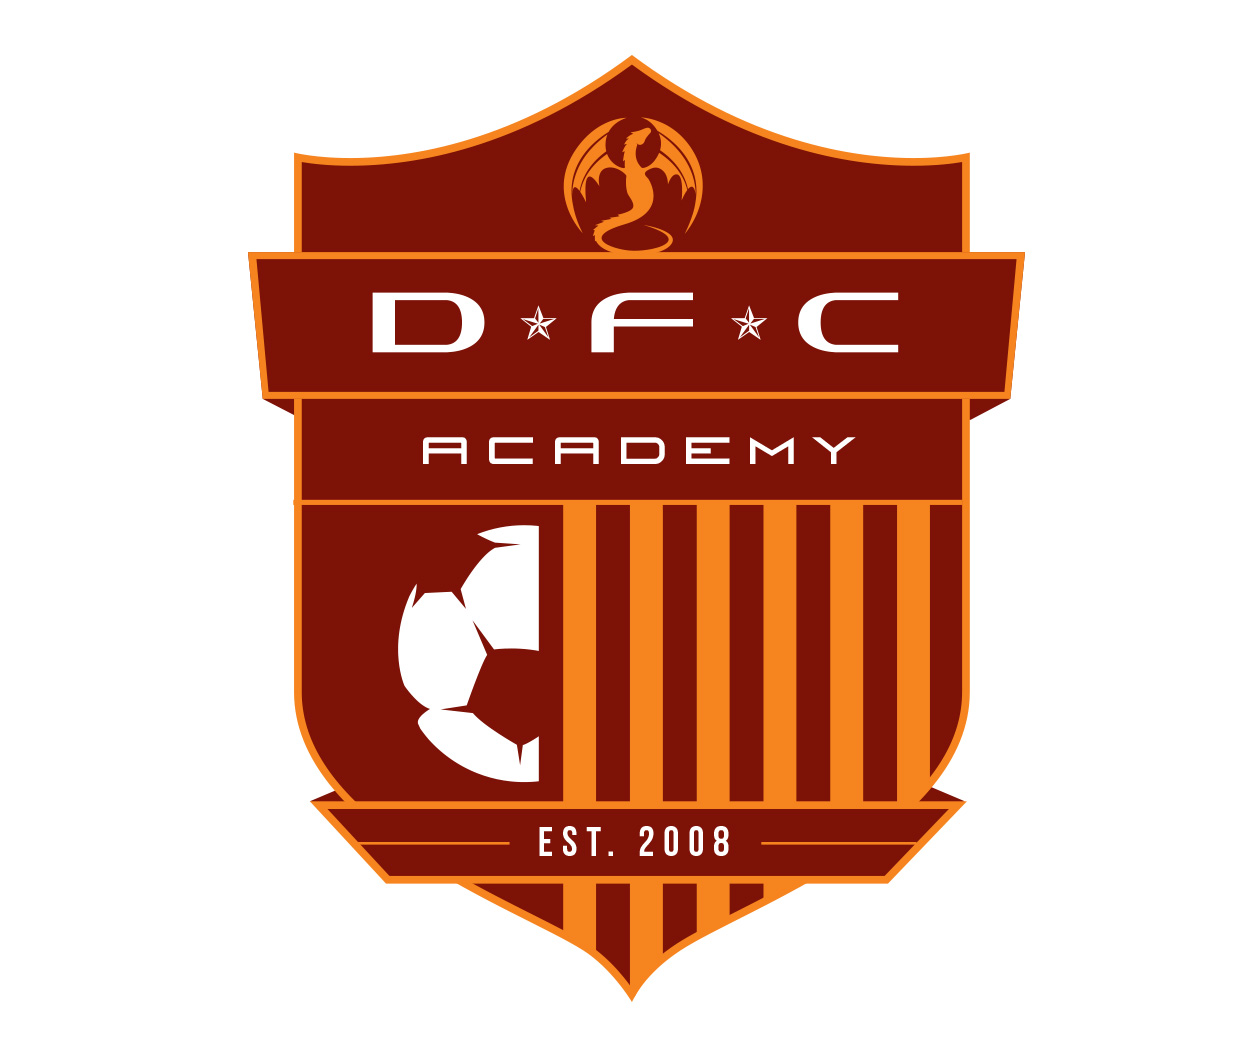 custom soccer logo design for dfc soccer academy by jordan fretz design